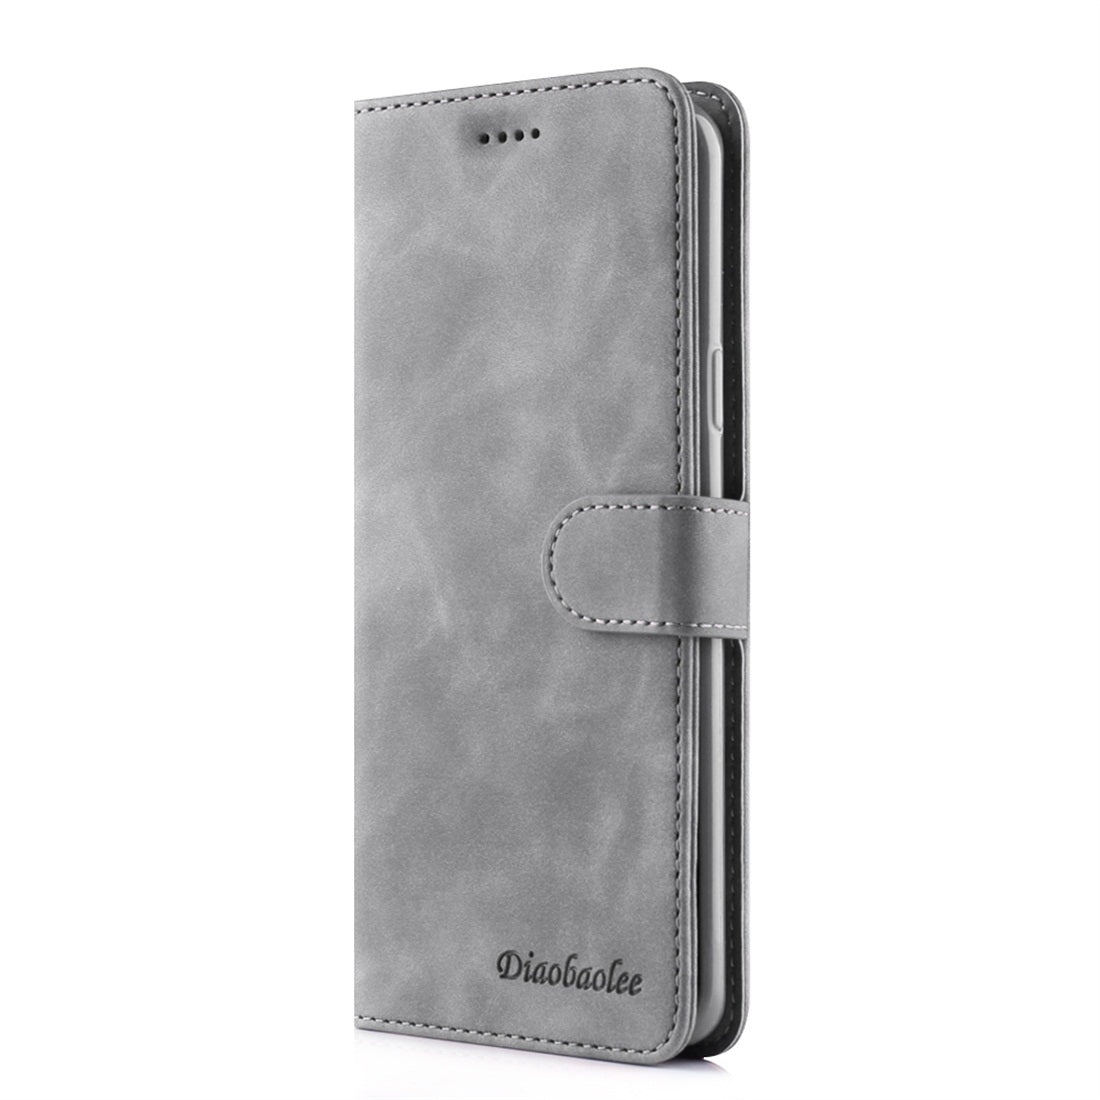 For Galaxy S9+ Diaobaolee Pure Fresh Texture Horizontal Flip Leather Case, with Holder & Card Slot & Wallet & Photo Frame(Grey)